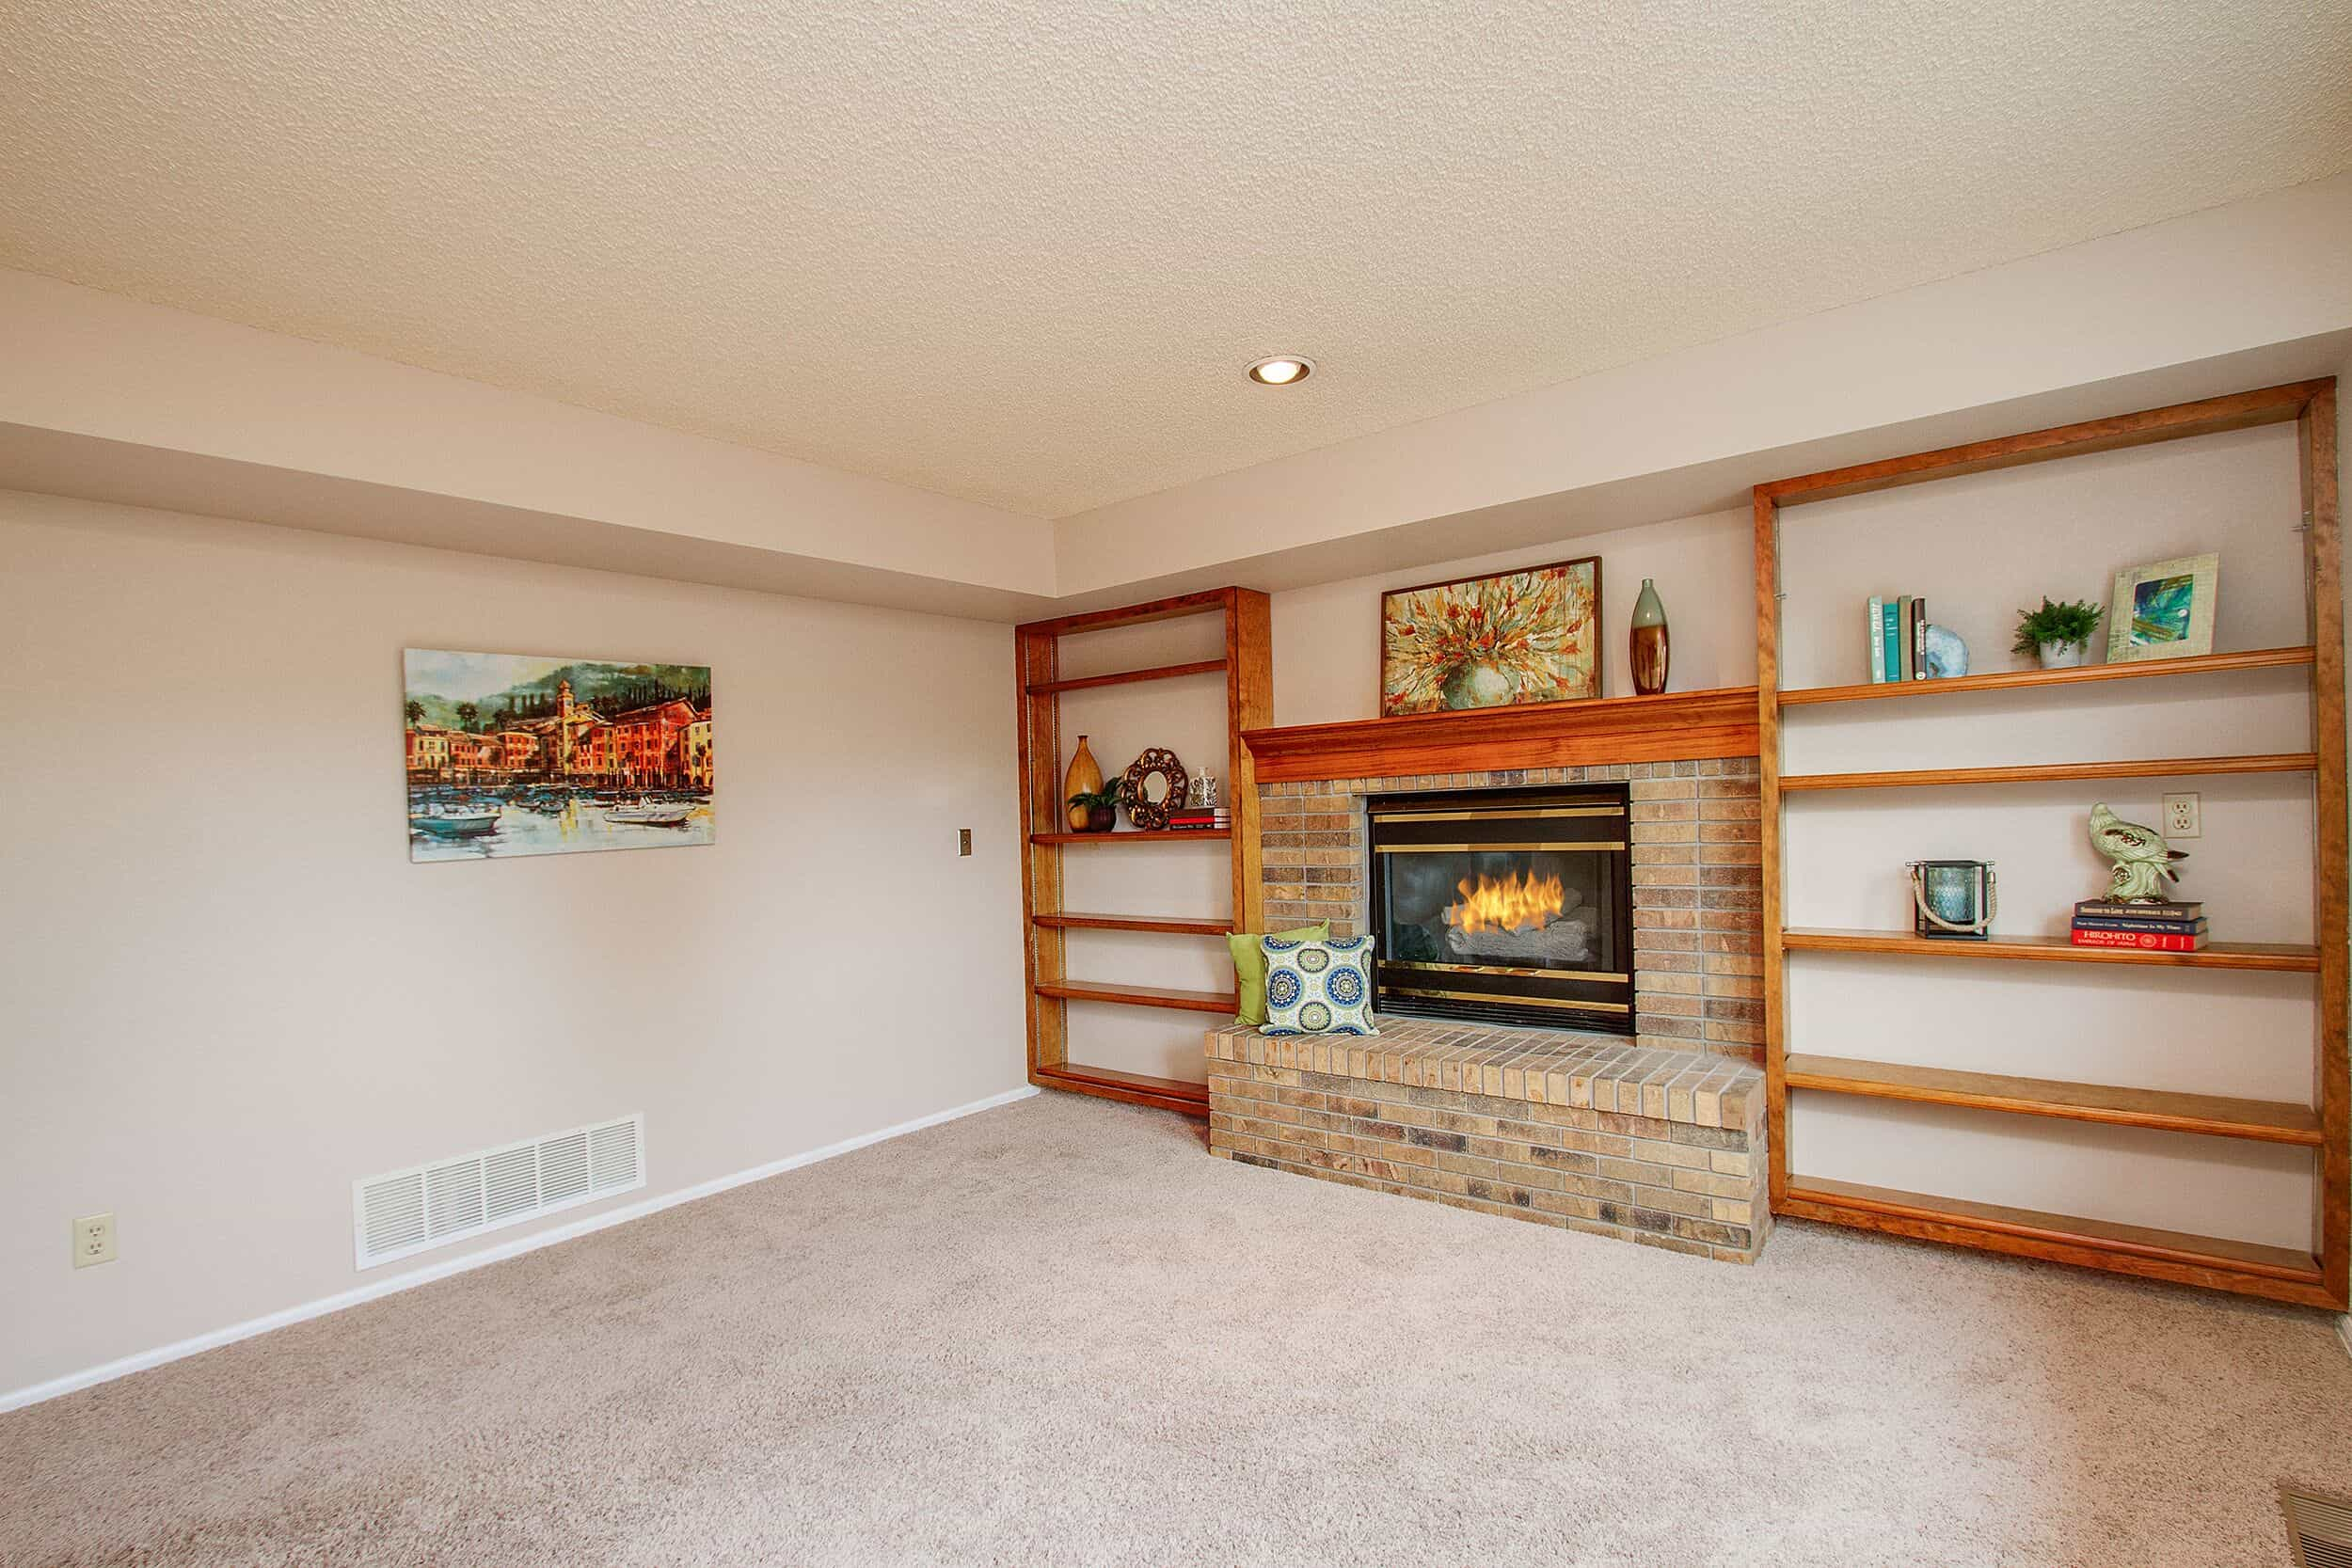 Family Room with Gas Log Fireplace and Built-Ins